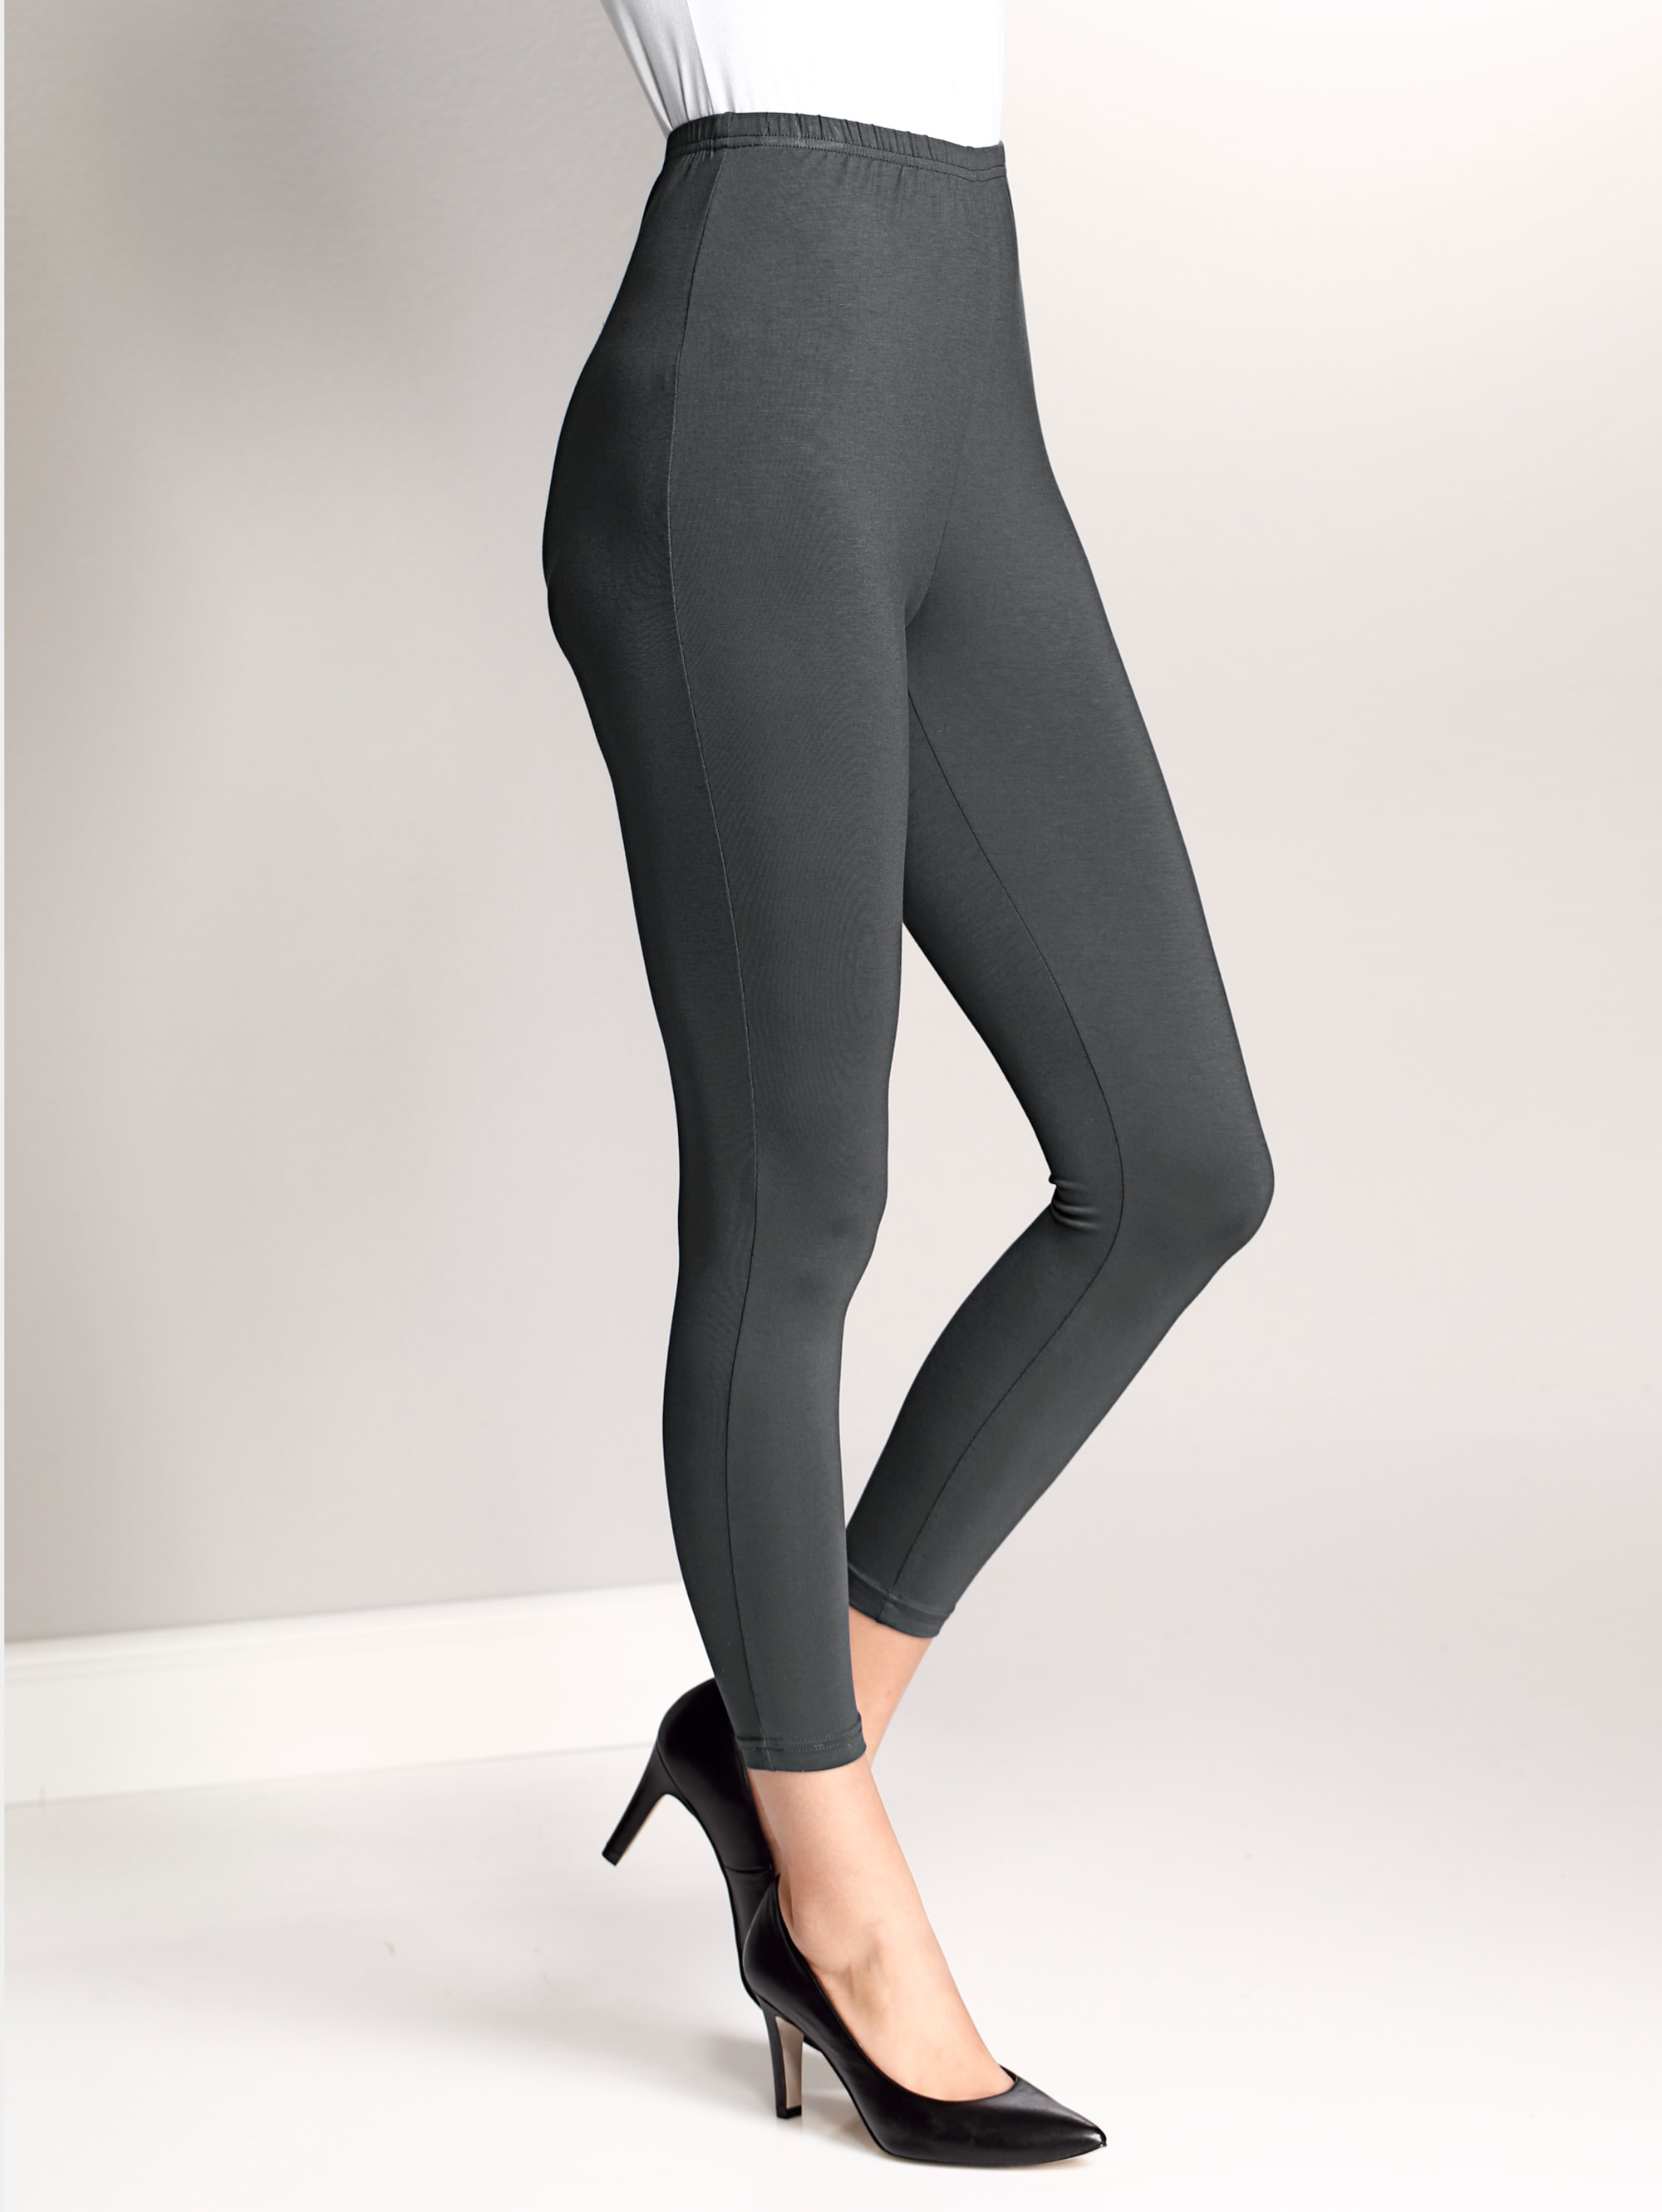 Alba Moda Leggings in Anthrazit günstig kaufen